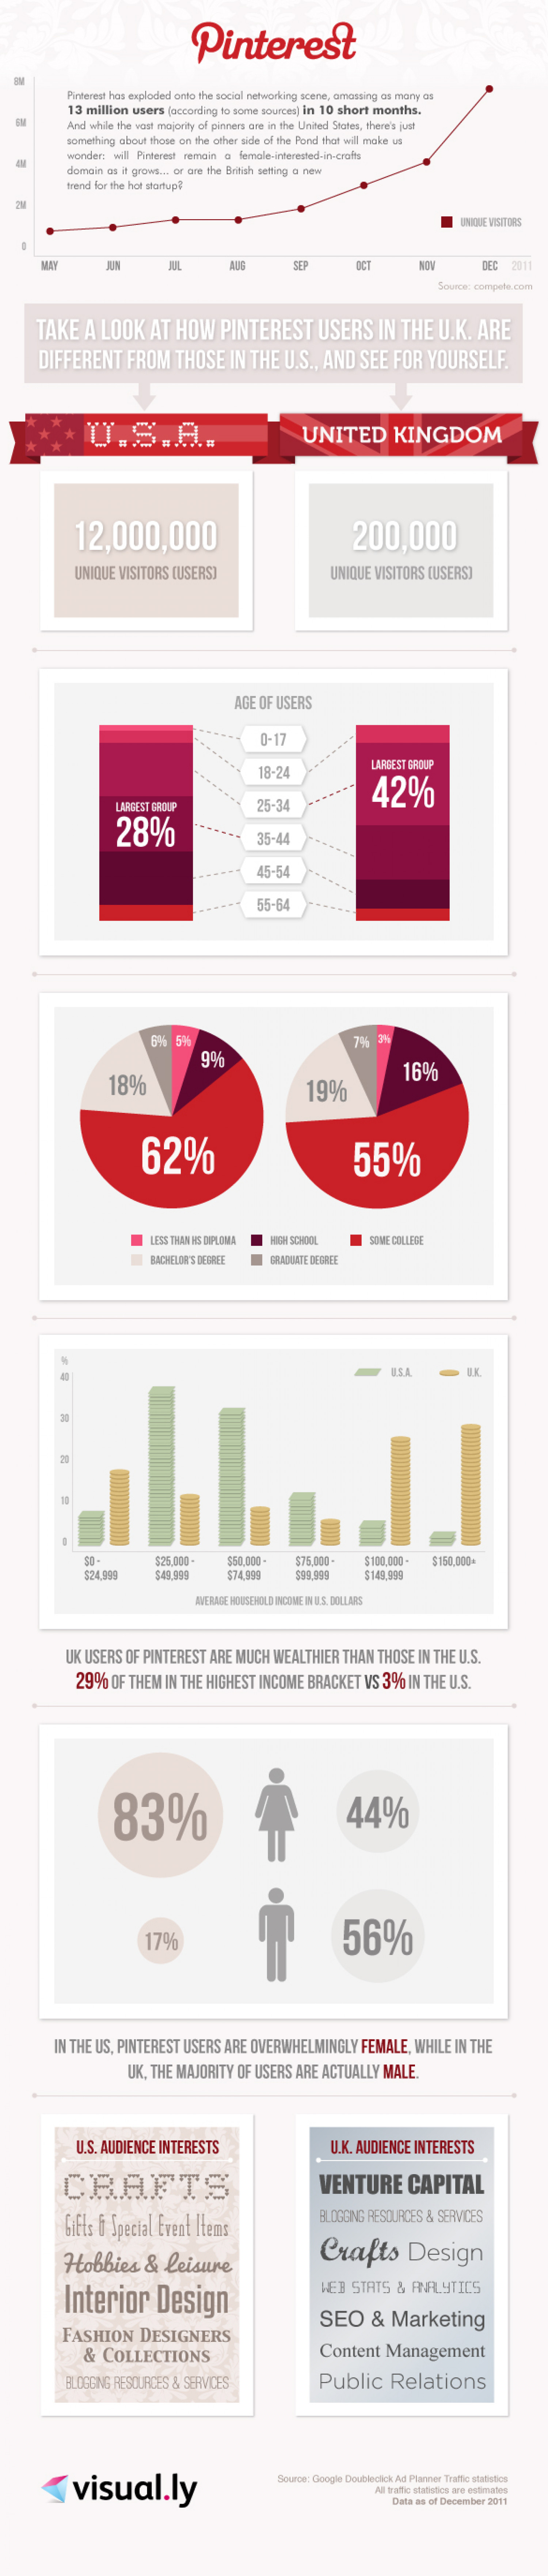 Pinterest: USA vs UK Infographic